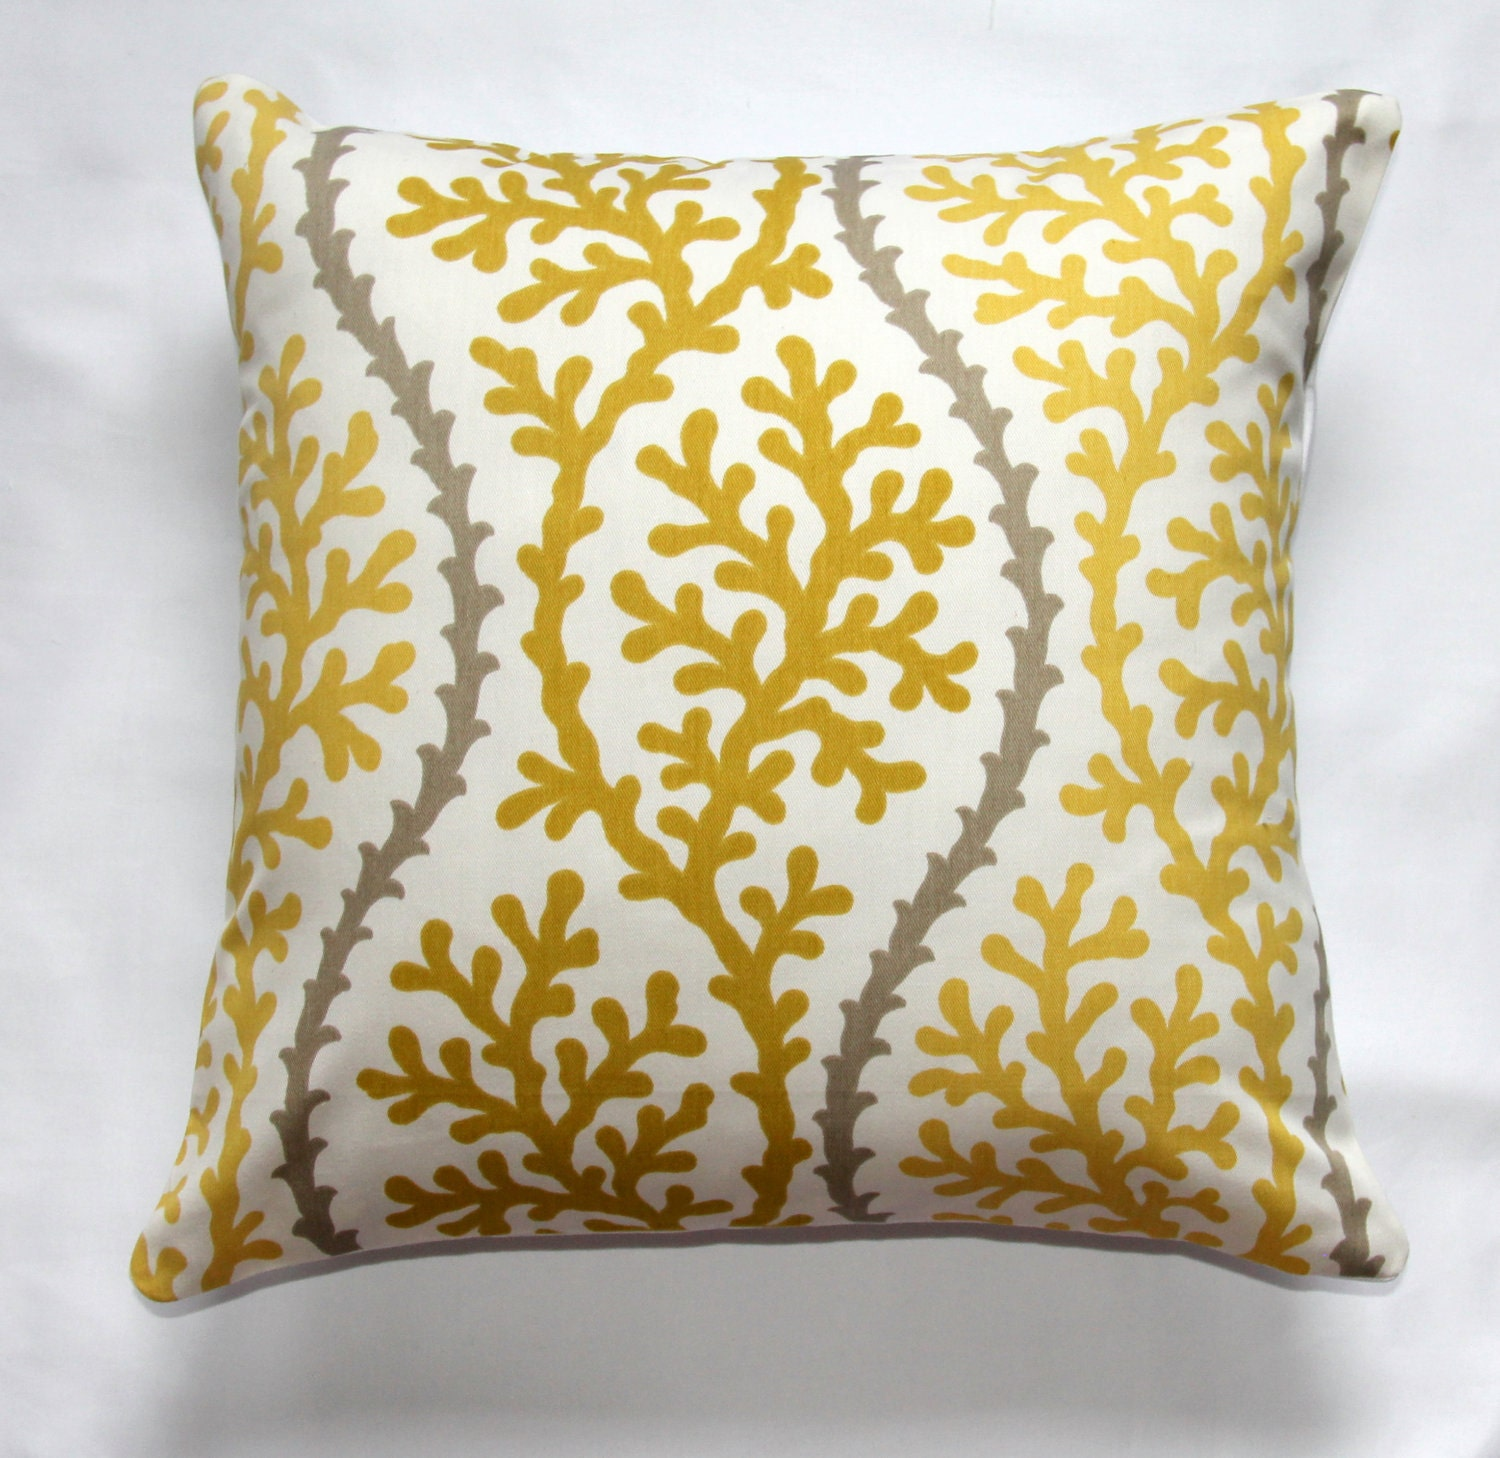 Decorative Pillows For Couch Etsy : Pillows decorative pillow accent pillow by ModernTouchDesigns